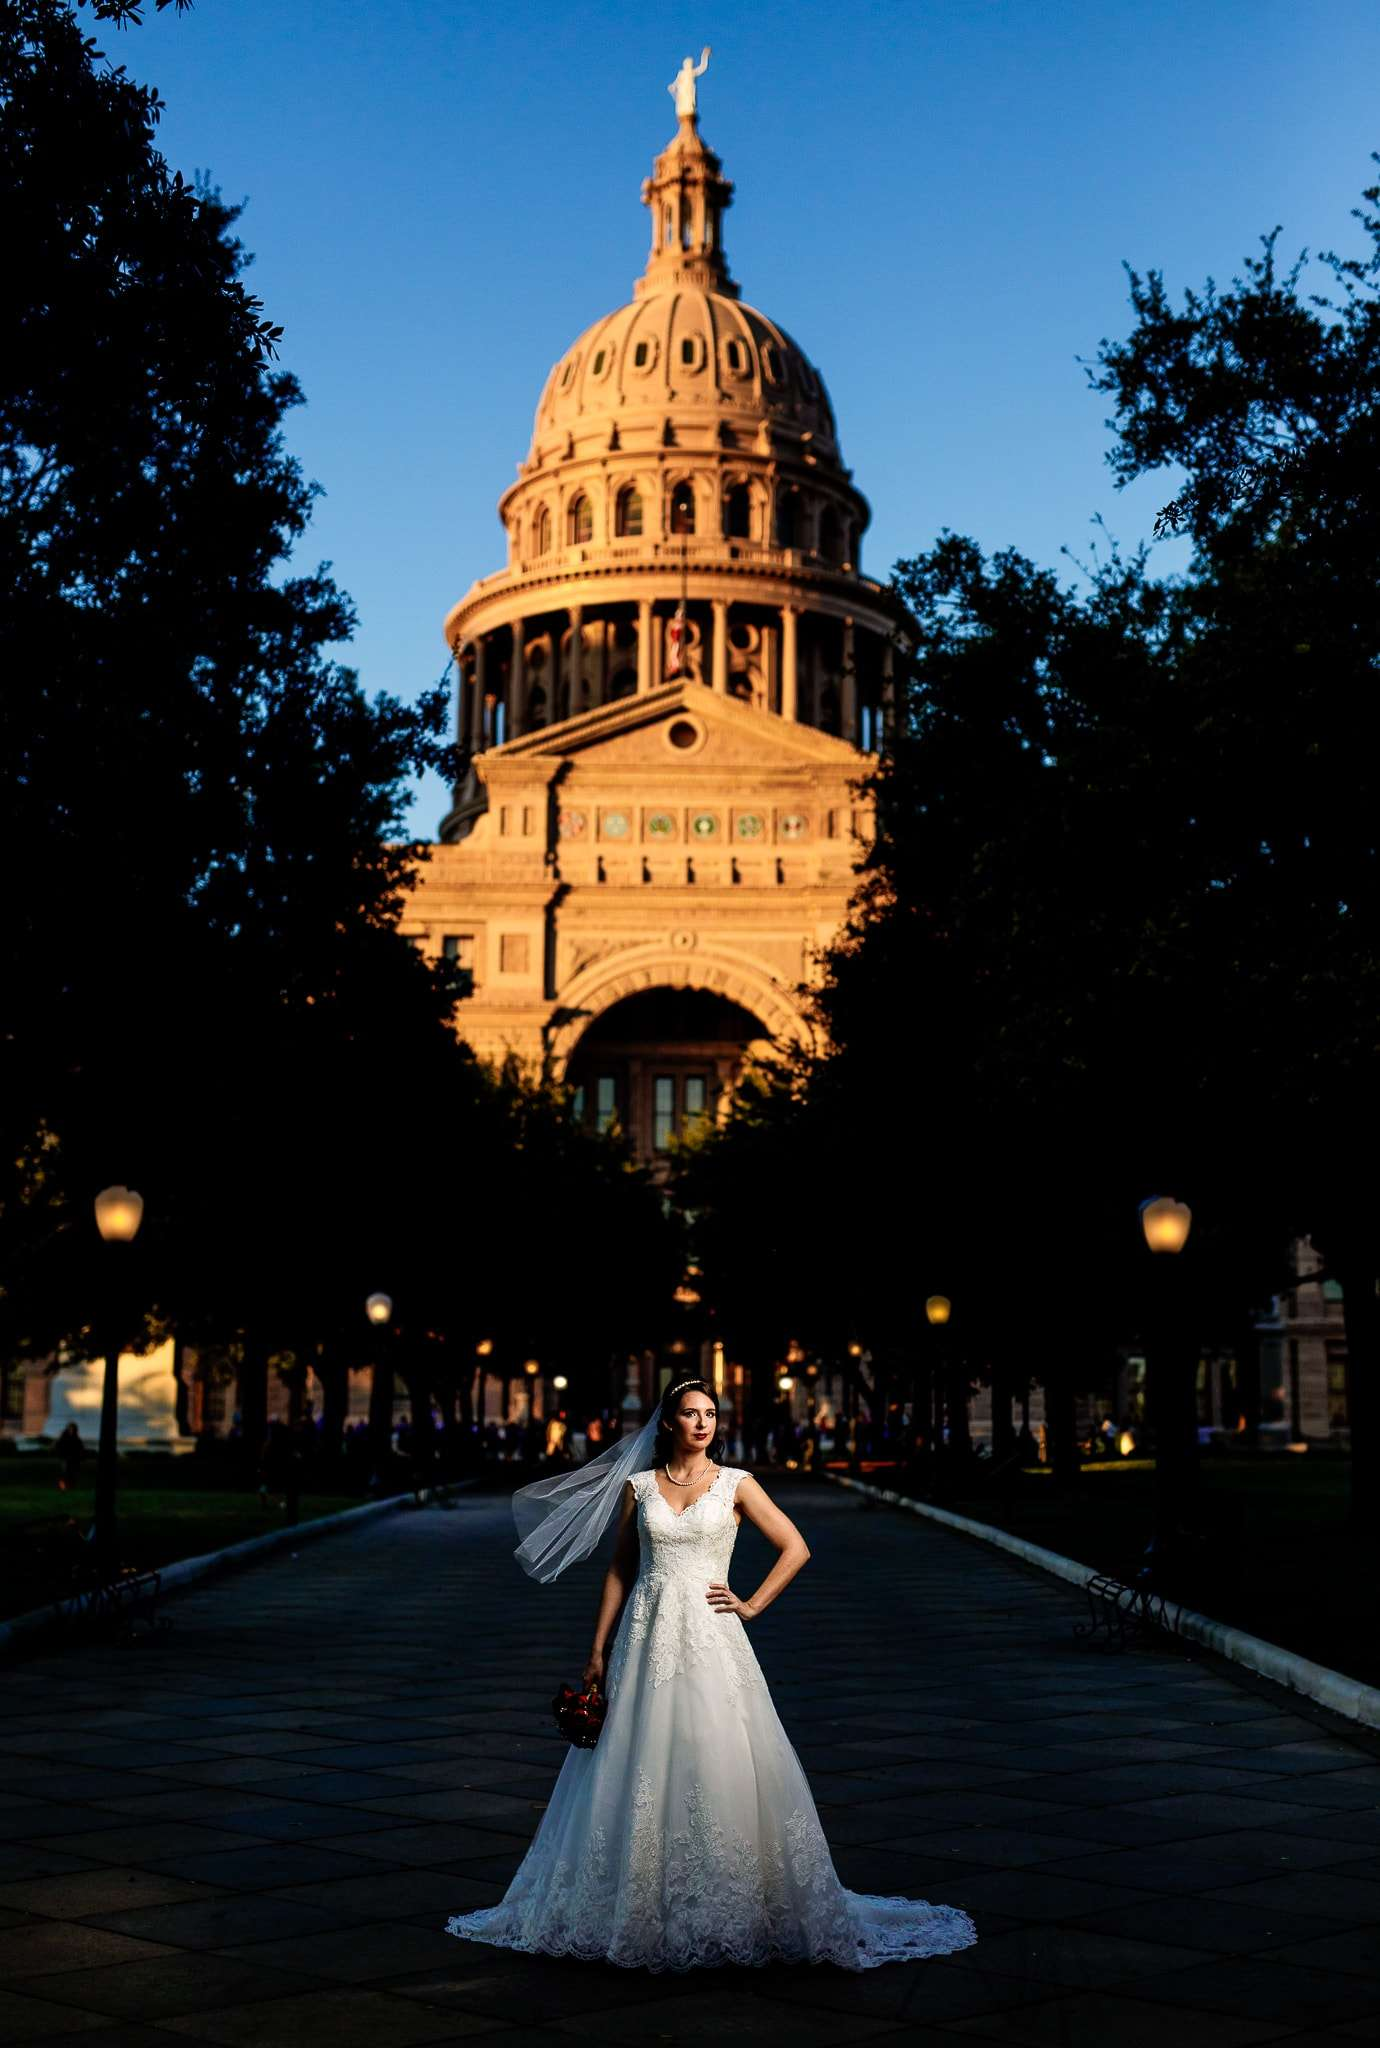 john winters photography bridal photo session texas state capitol